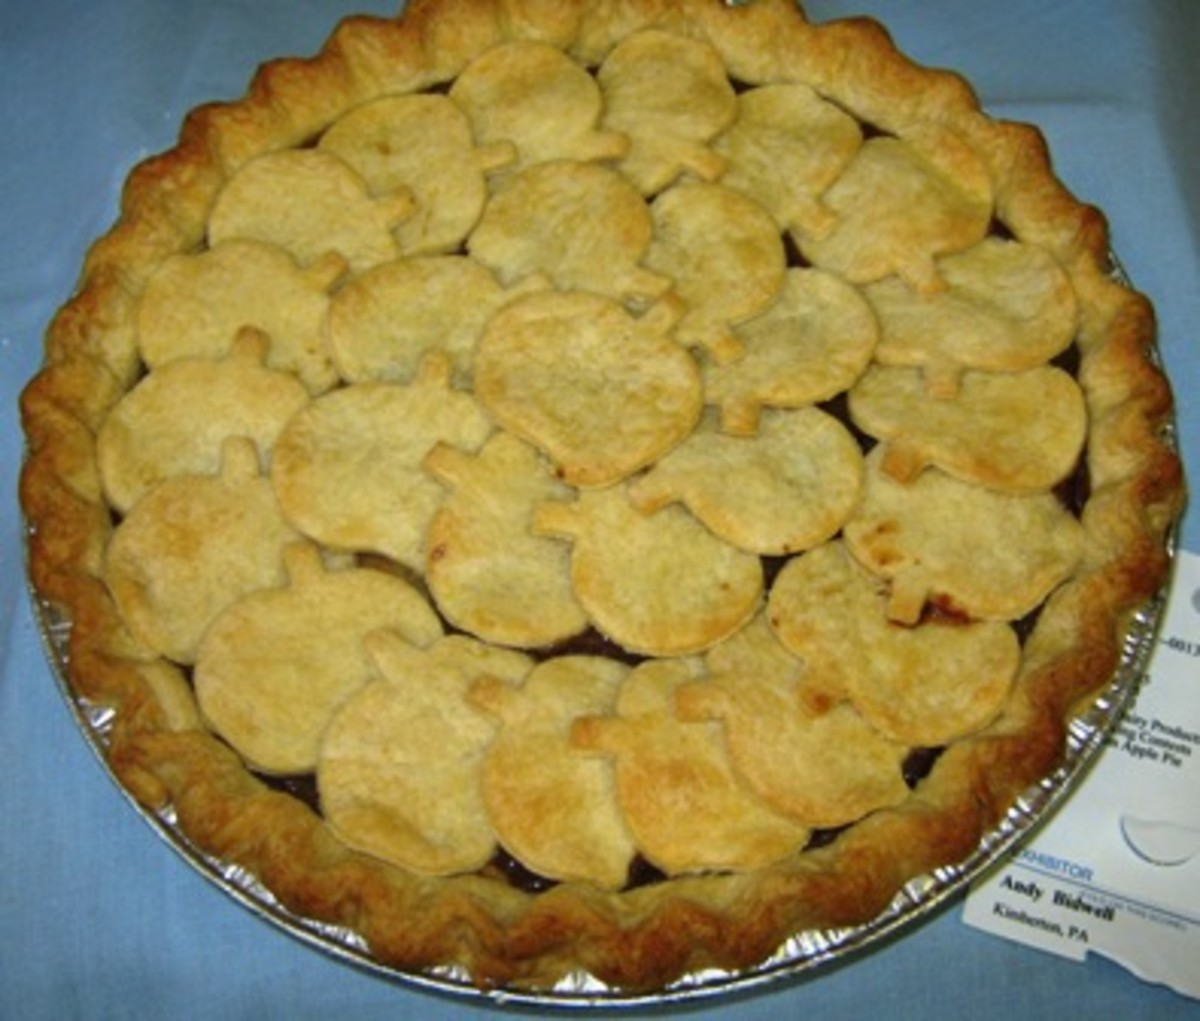 An apple pie winner